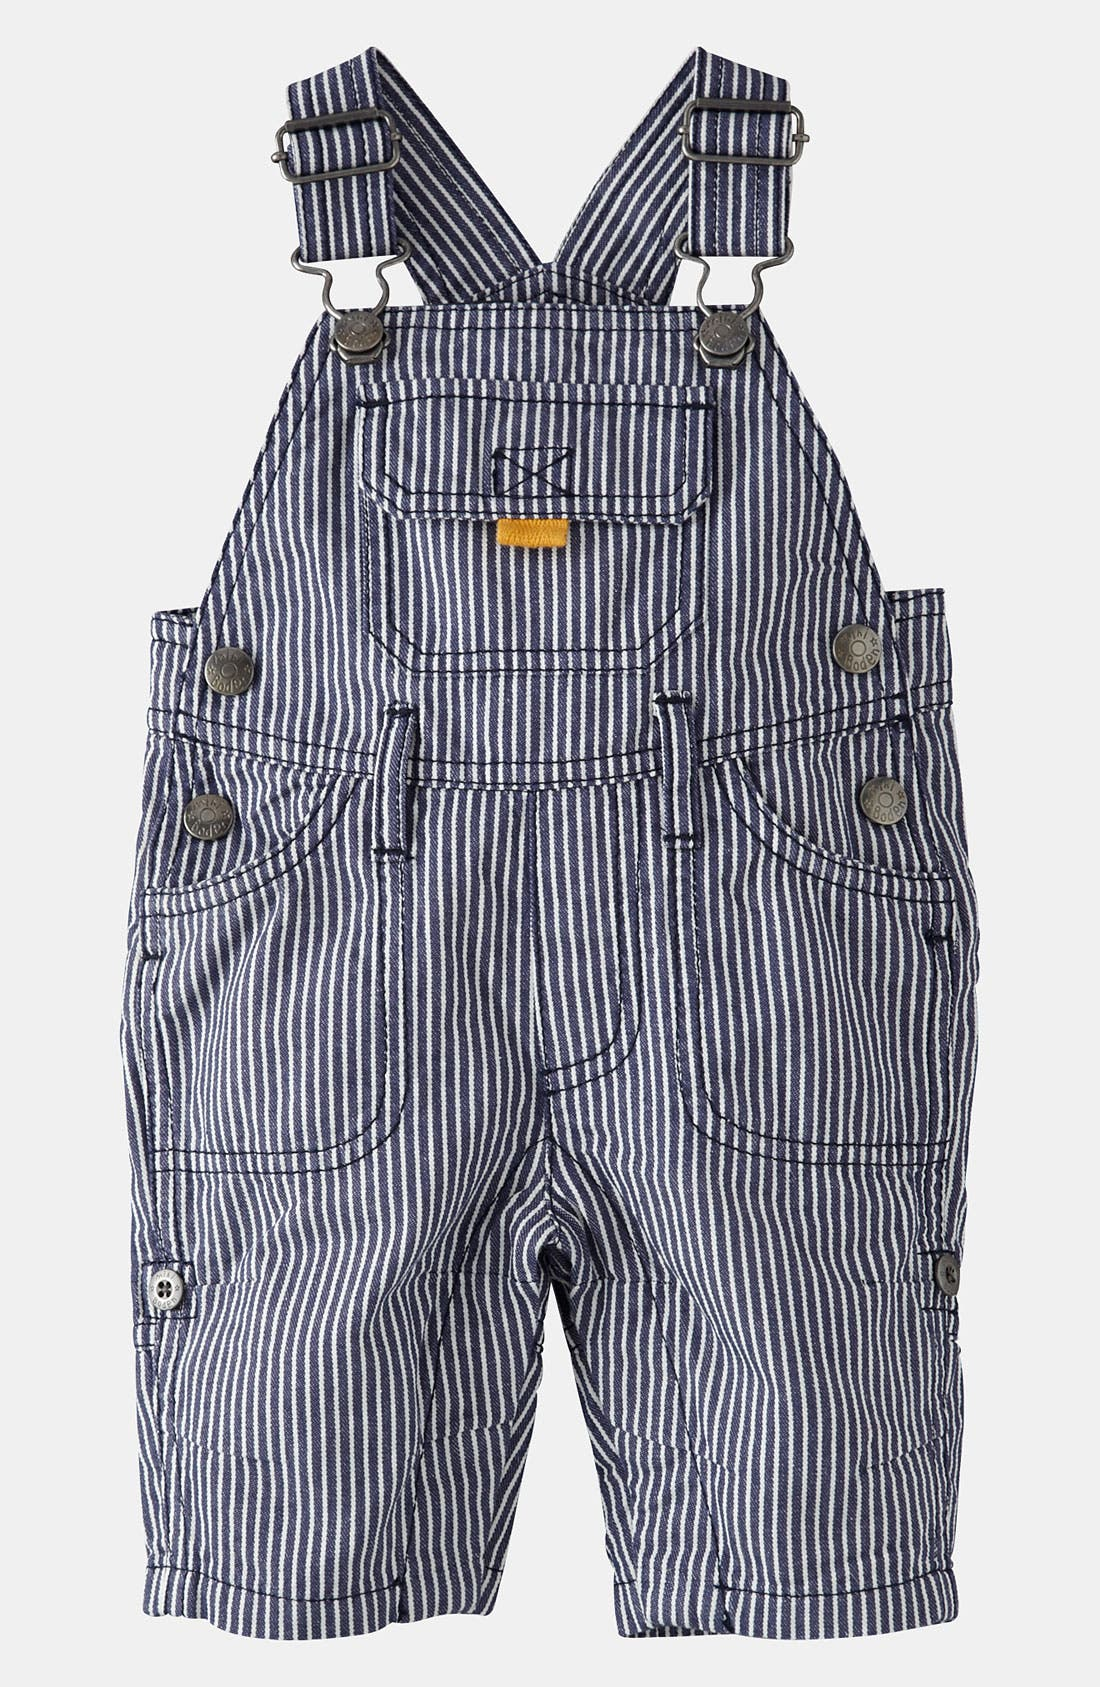 Main Image - Mini Boden 'Everyday' Overalls (Baby)